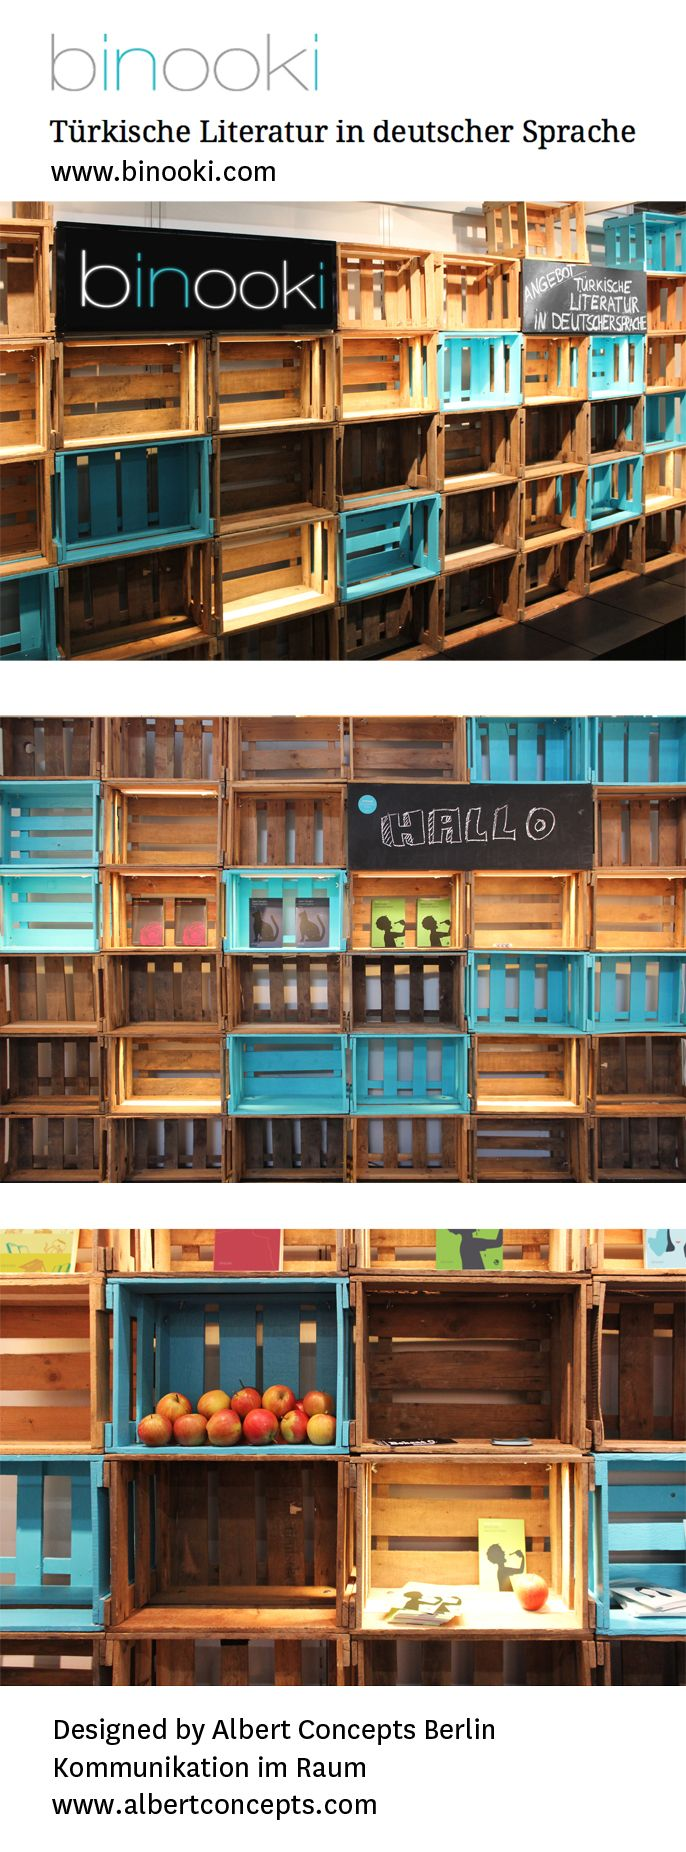 Albert Concepts Interior Architects in Berlin designed this rustic trade fair stand for Binooki publishing using wooden wine boxes and splashes of colour to catch the eye. #Weinkisten #Weinkiste #Interior #Interiordesign #expo #Display #homedecor #shelf